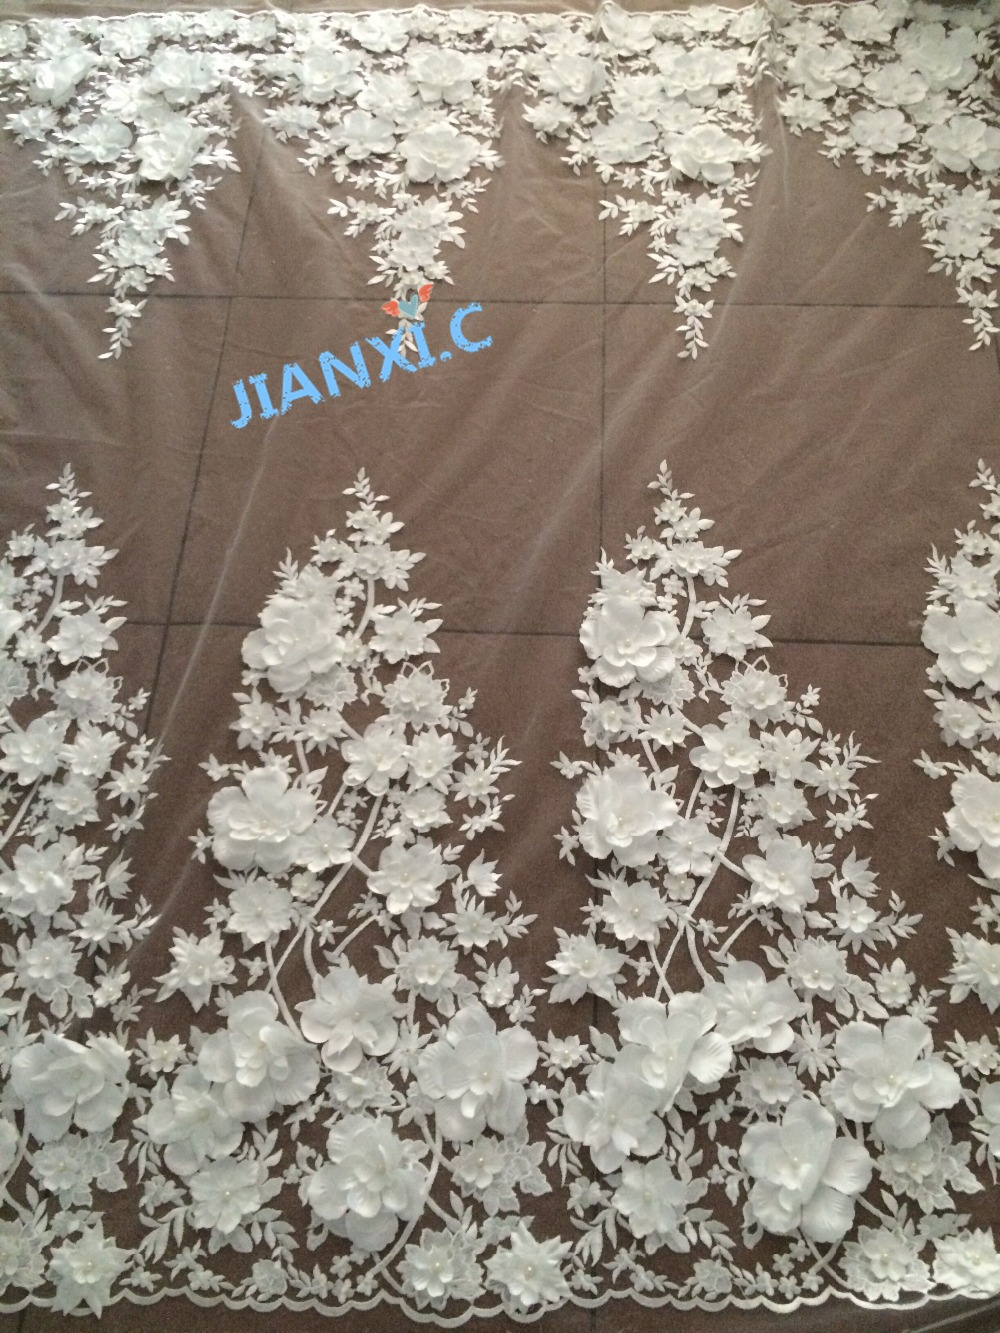 ship by dhl 3d flower white embroidery mesh tulle fabric JIANXI C 72802 with beads african